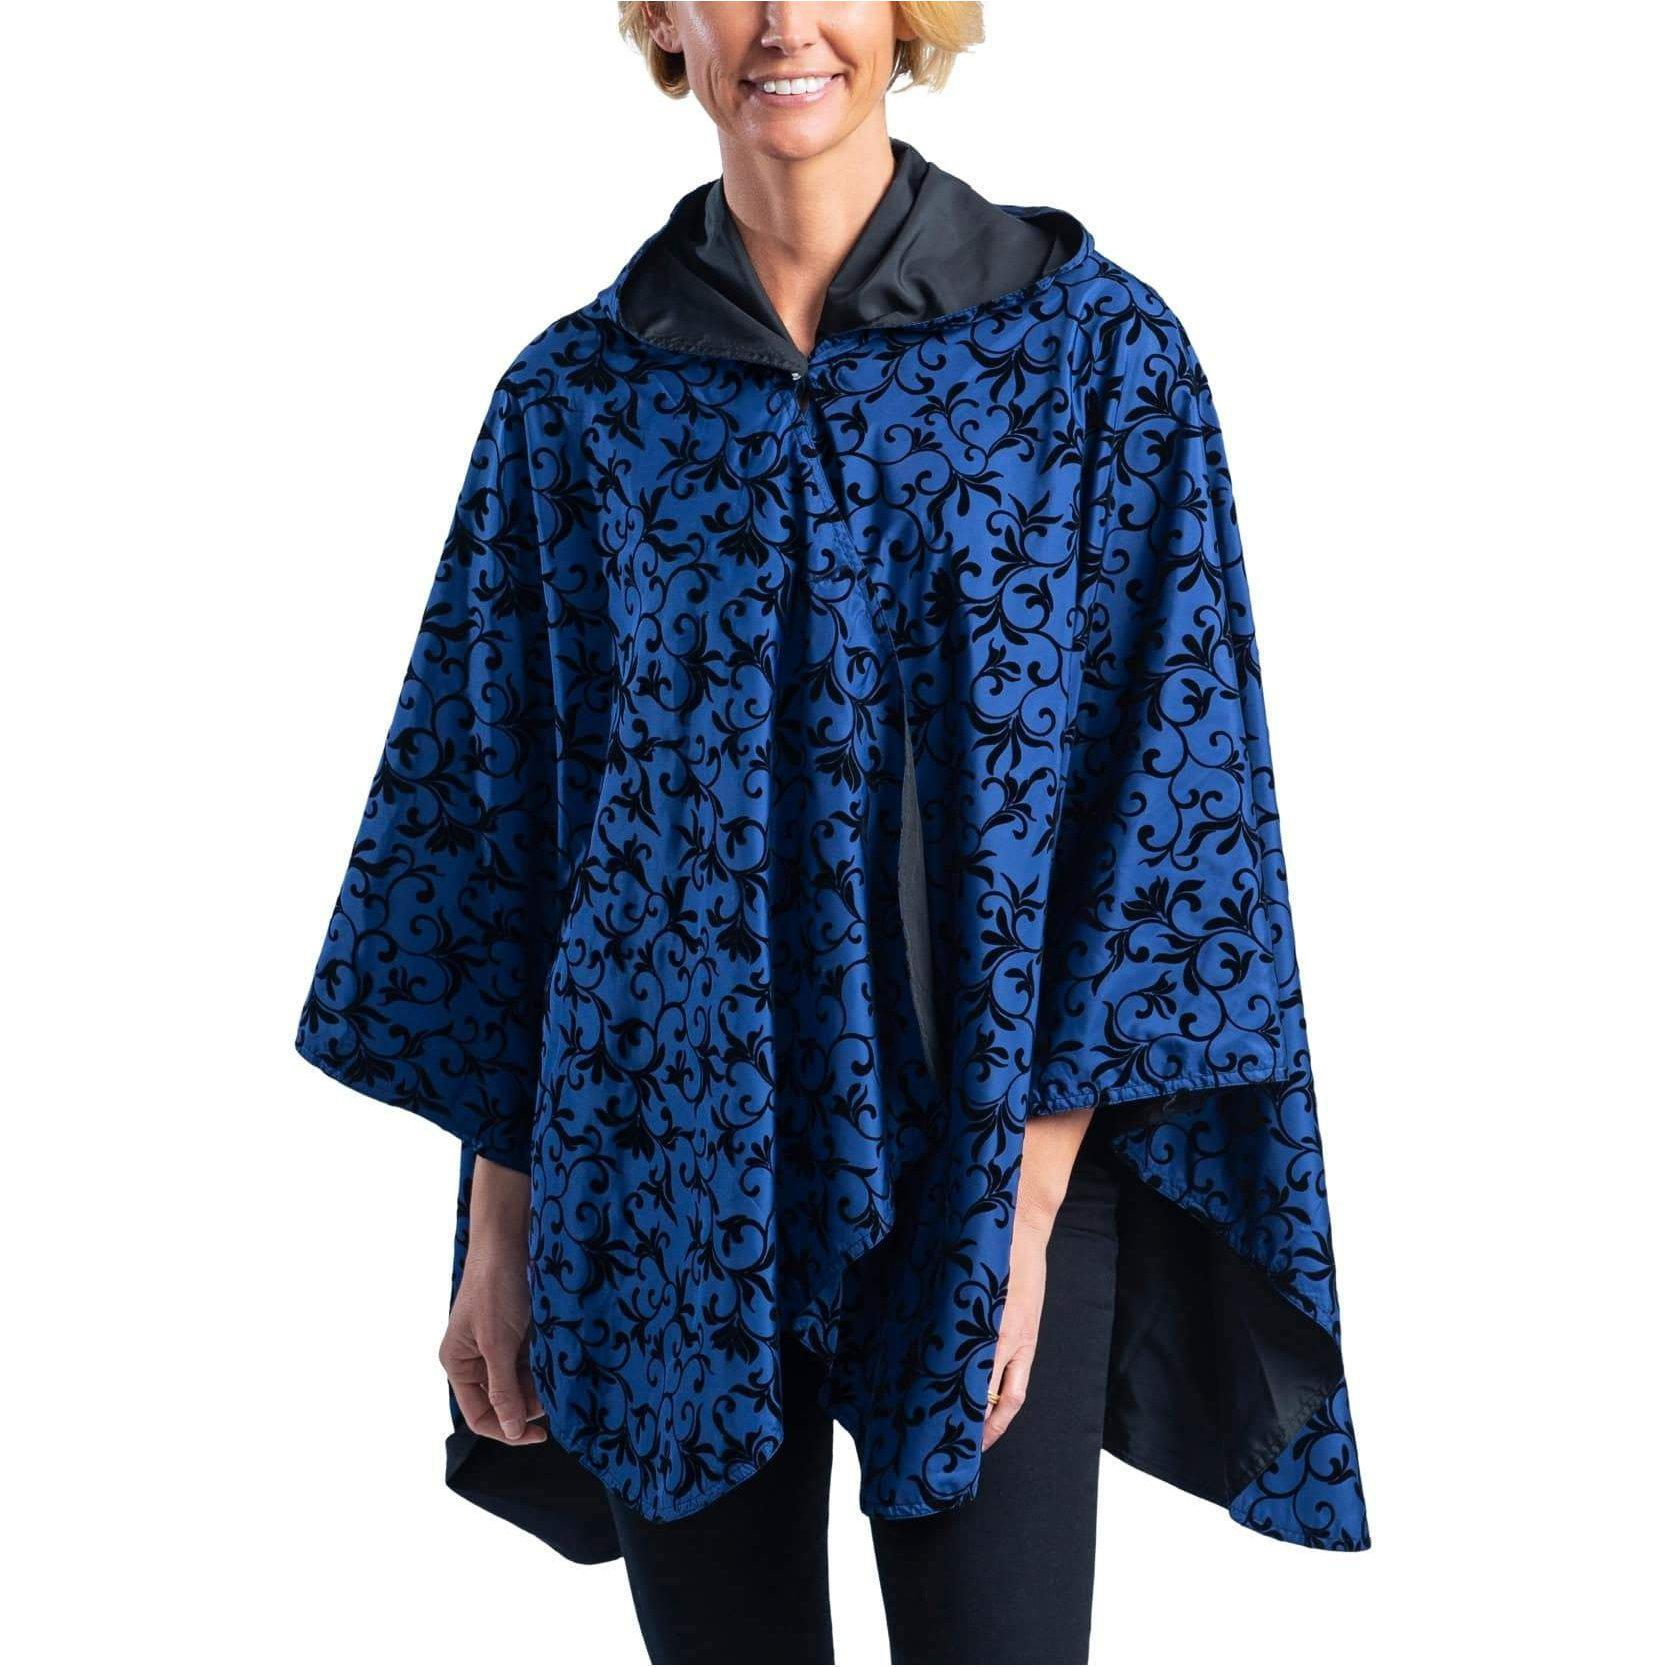 RainCaper - Dressy Rain Cape Midnight Blue with Velvet Swirls-Raincaper-RainCaper-Blue-Lizzy's Pink Boutique